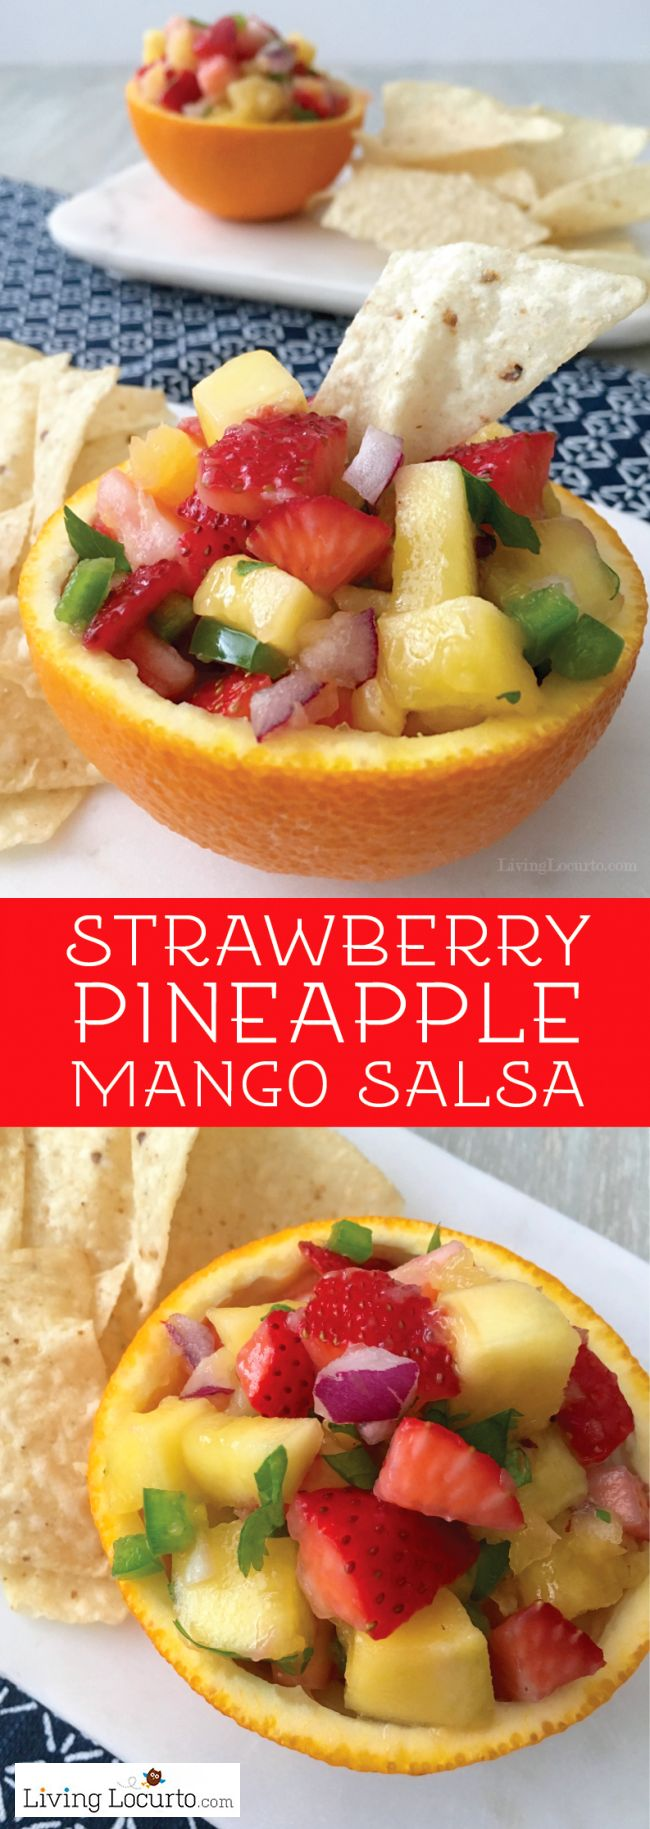 Sweet And Spicy Strawberry Pineapple Mango Salsa Is A Fabulous Healthy